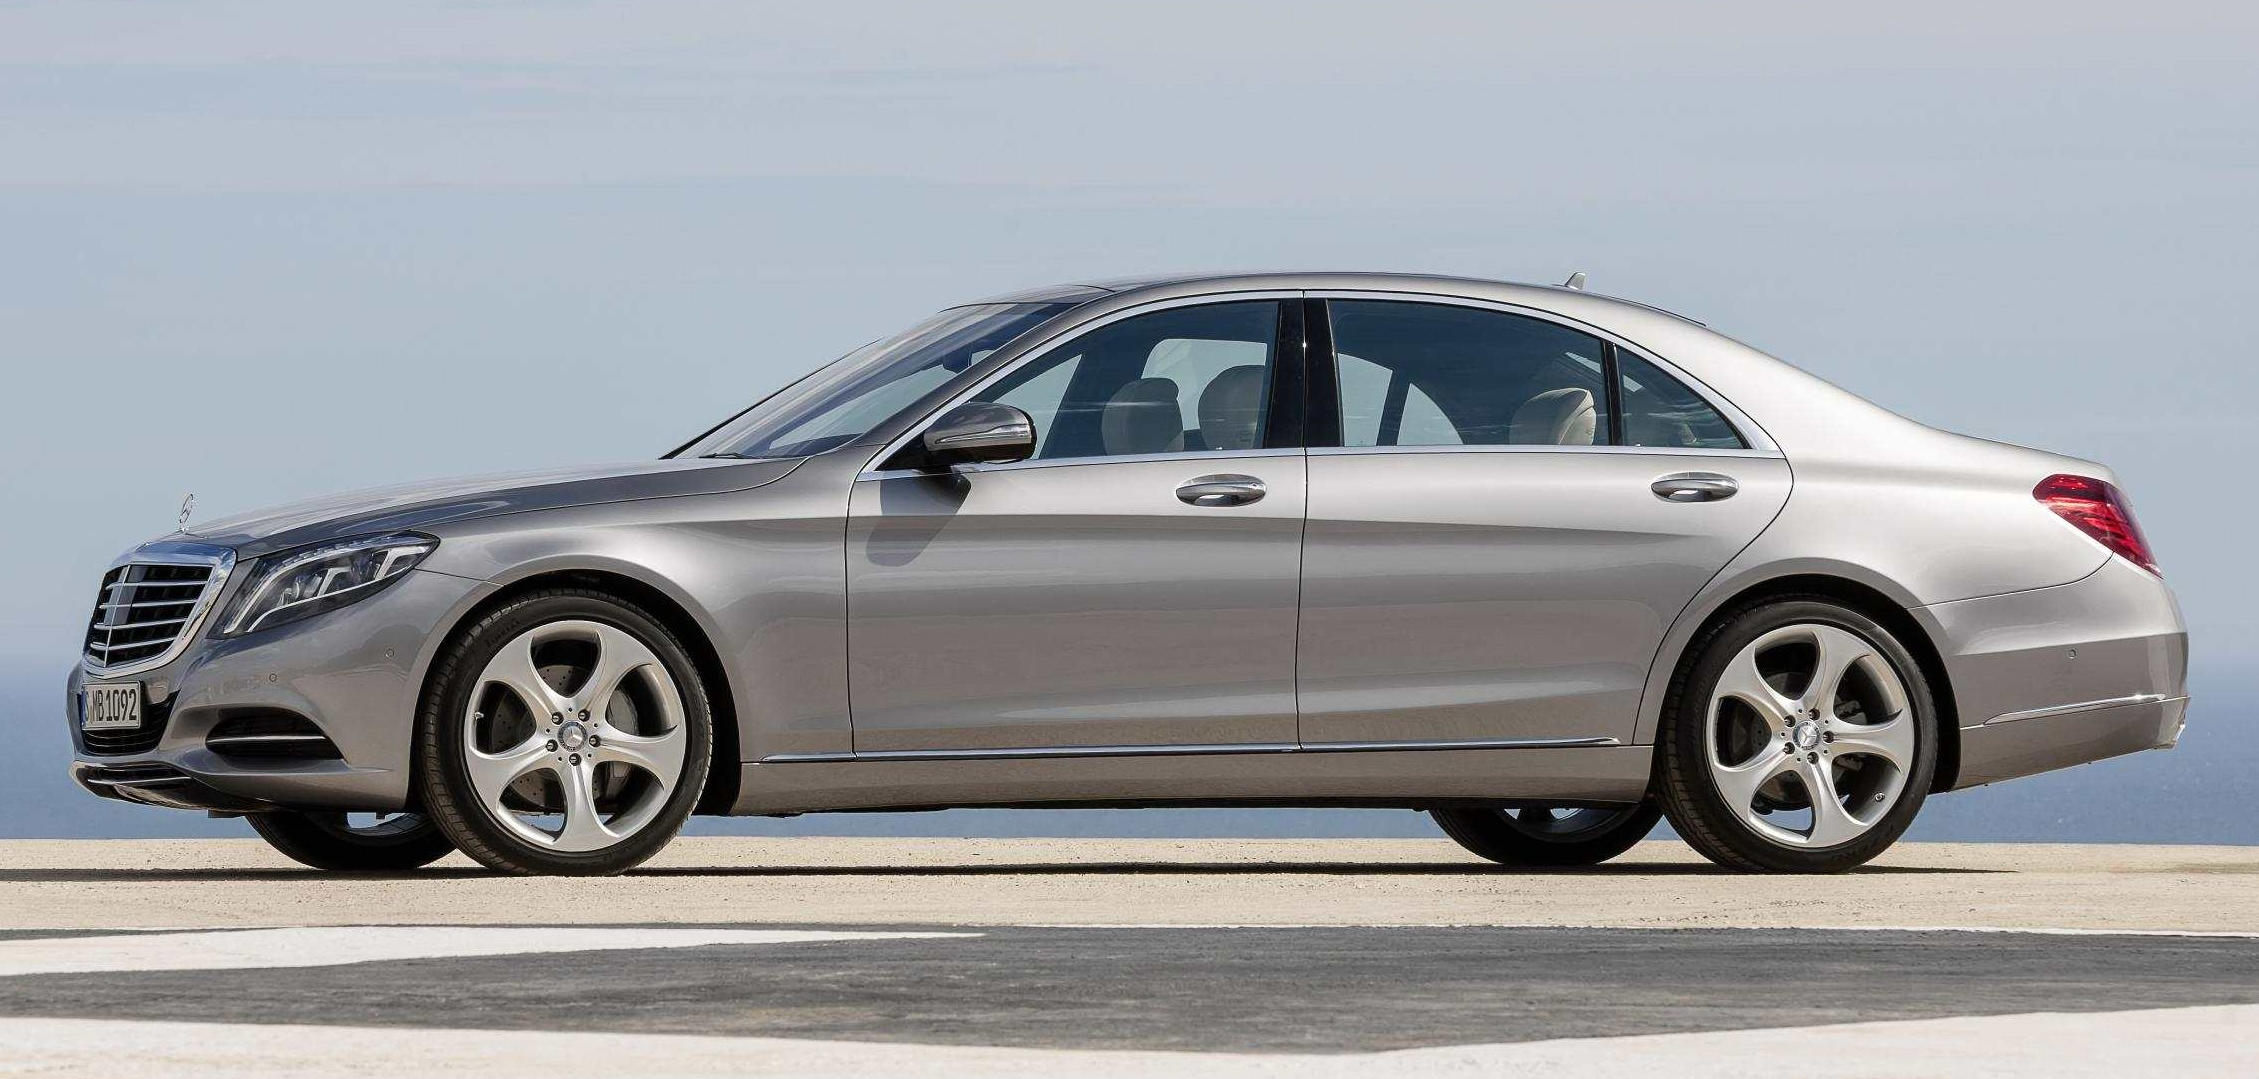 Mercedes-Benz S400 Hybrid (2014): New Car Review